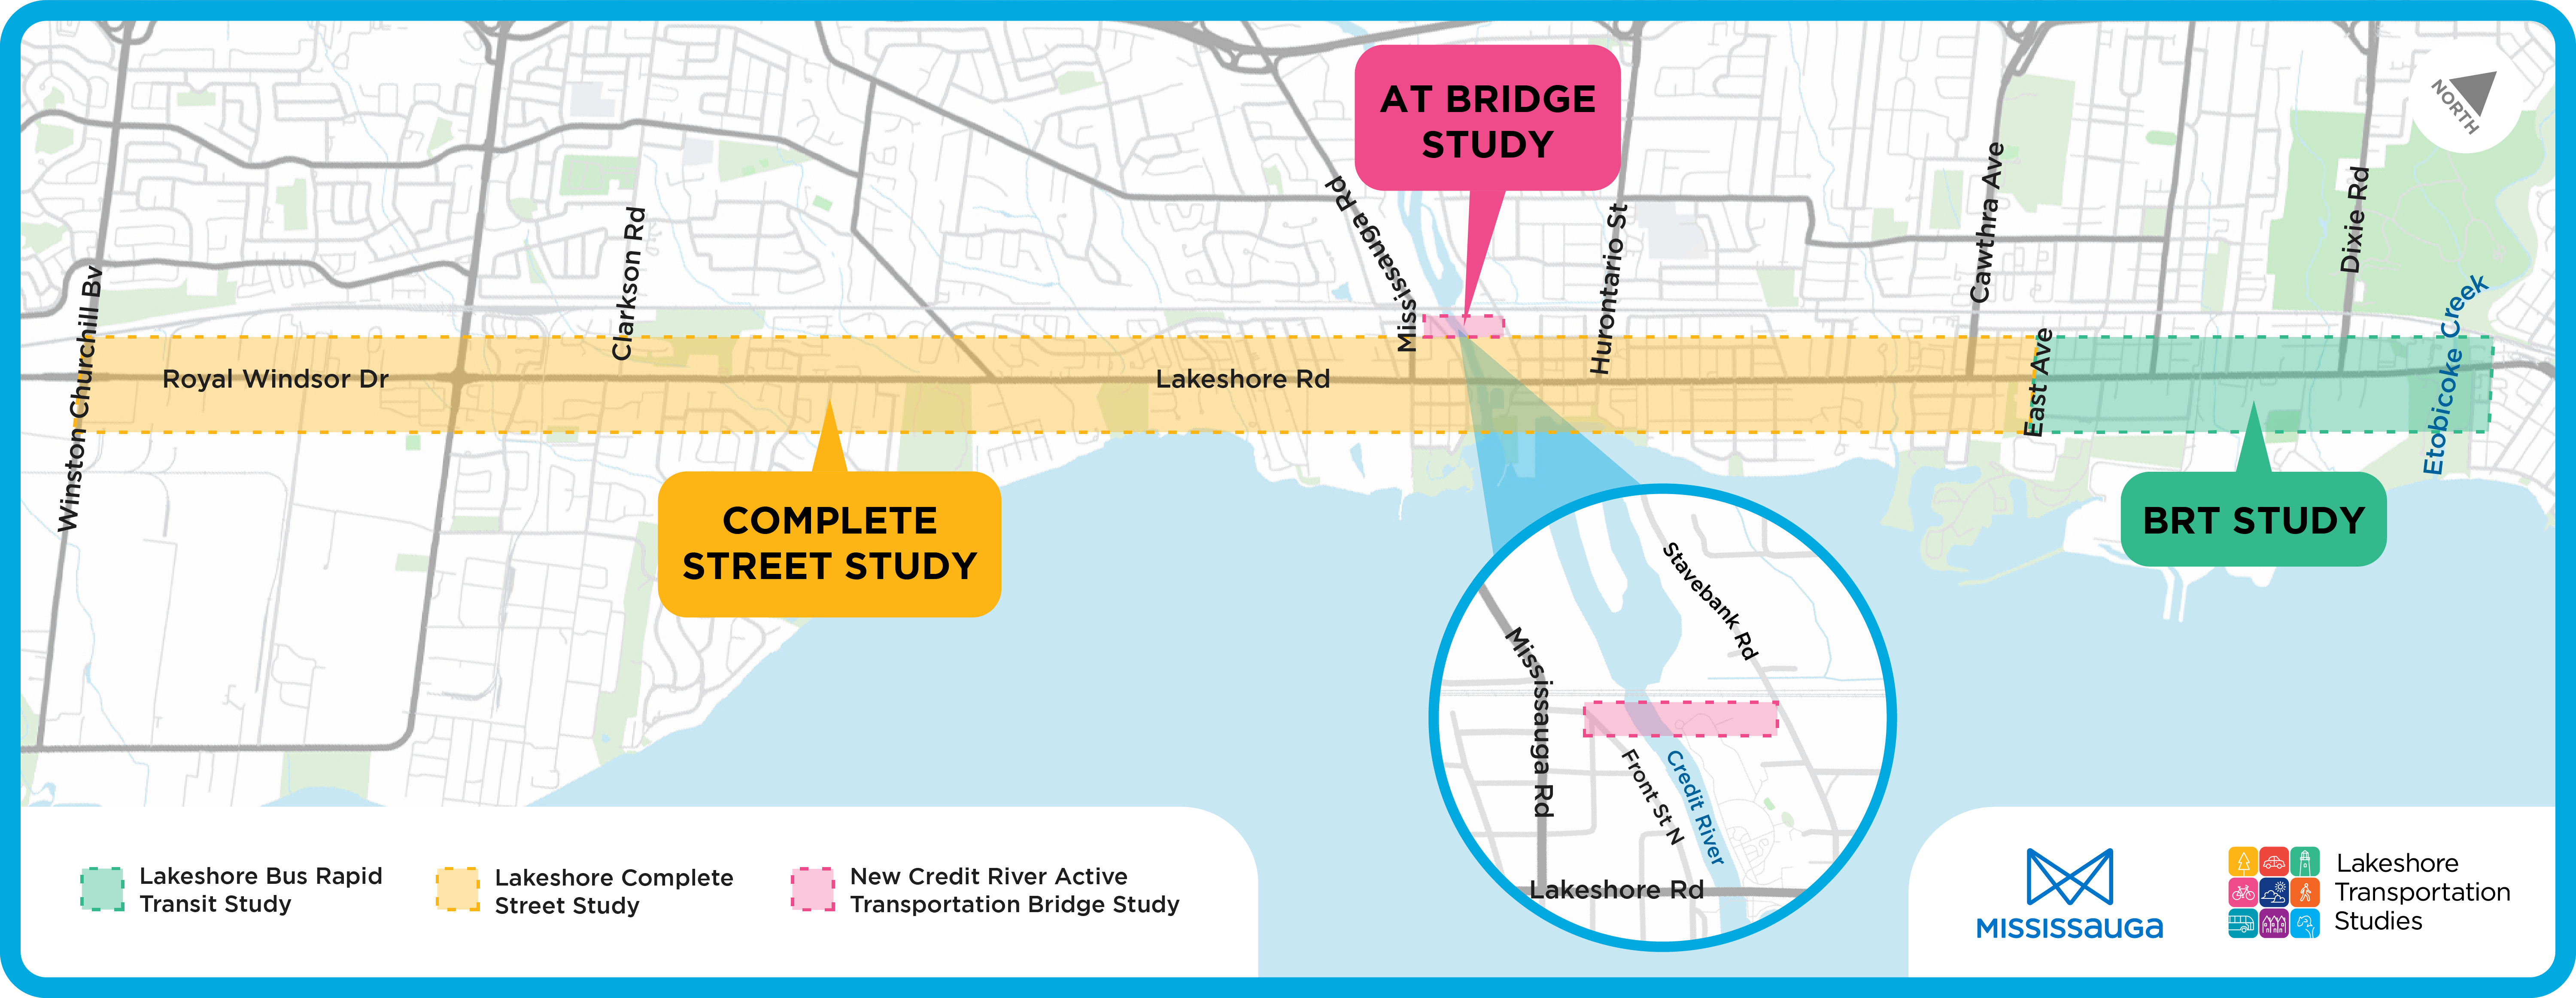 This study area map highlights three infrastructure projects, New Credit River Active Transportation Bridge Study, Lakeshore Complete Street Study and Lakeshore Bus Rapid Transit study.